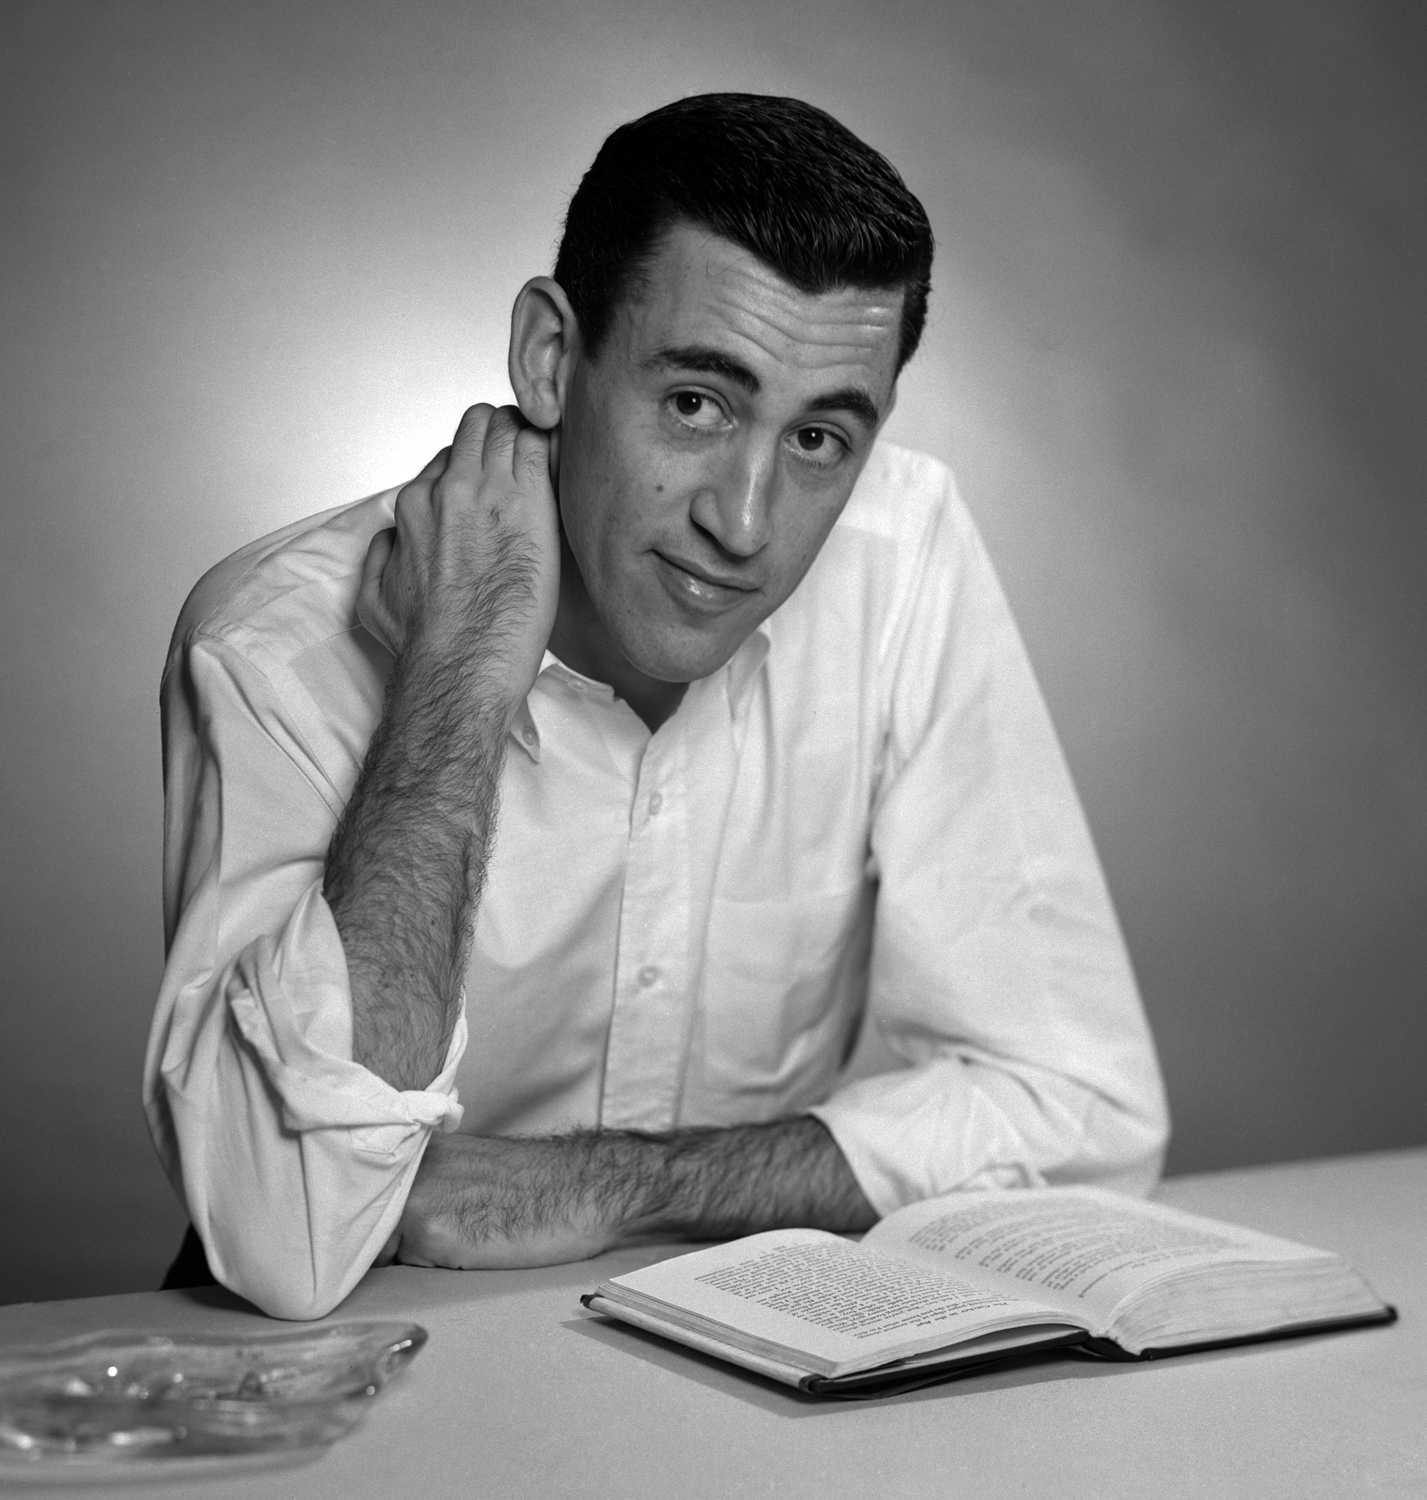 j d salinger biography Jd salinger doesn't want to talk leogiulia1 loading unsubscribe from leogiulia1 cancel unsubscribe kevin spacey, jd salinger movie hd - duration: 2:43 one media 763,282 views 2:43 joyce maynard interview (1998) - duration: 26:49 manufacturing intellect 6,515 views.